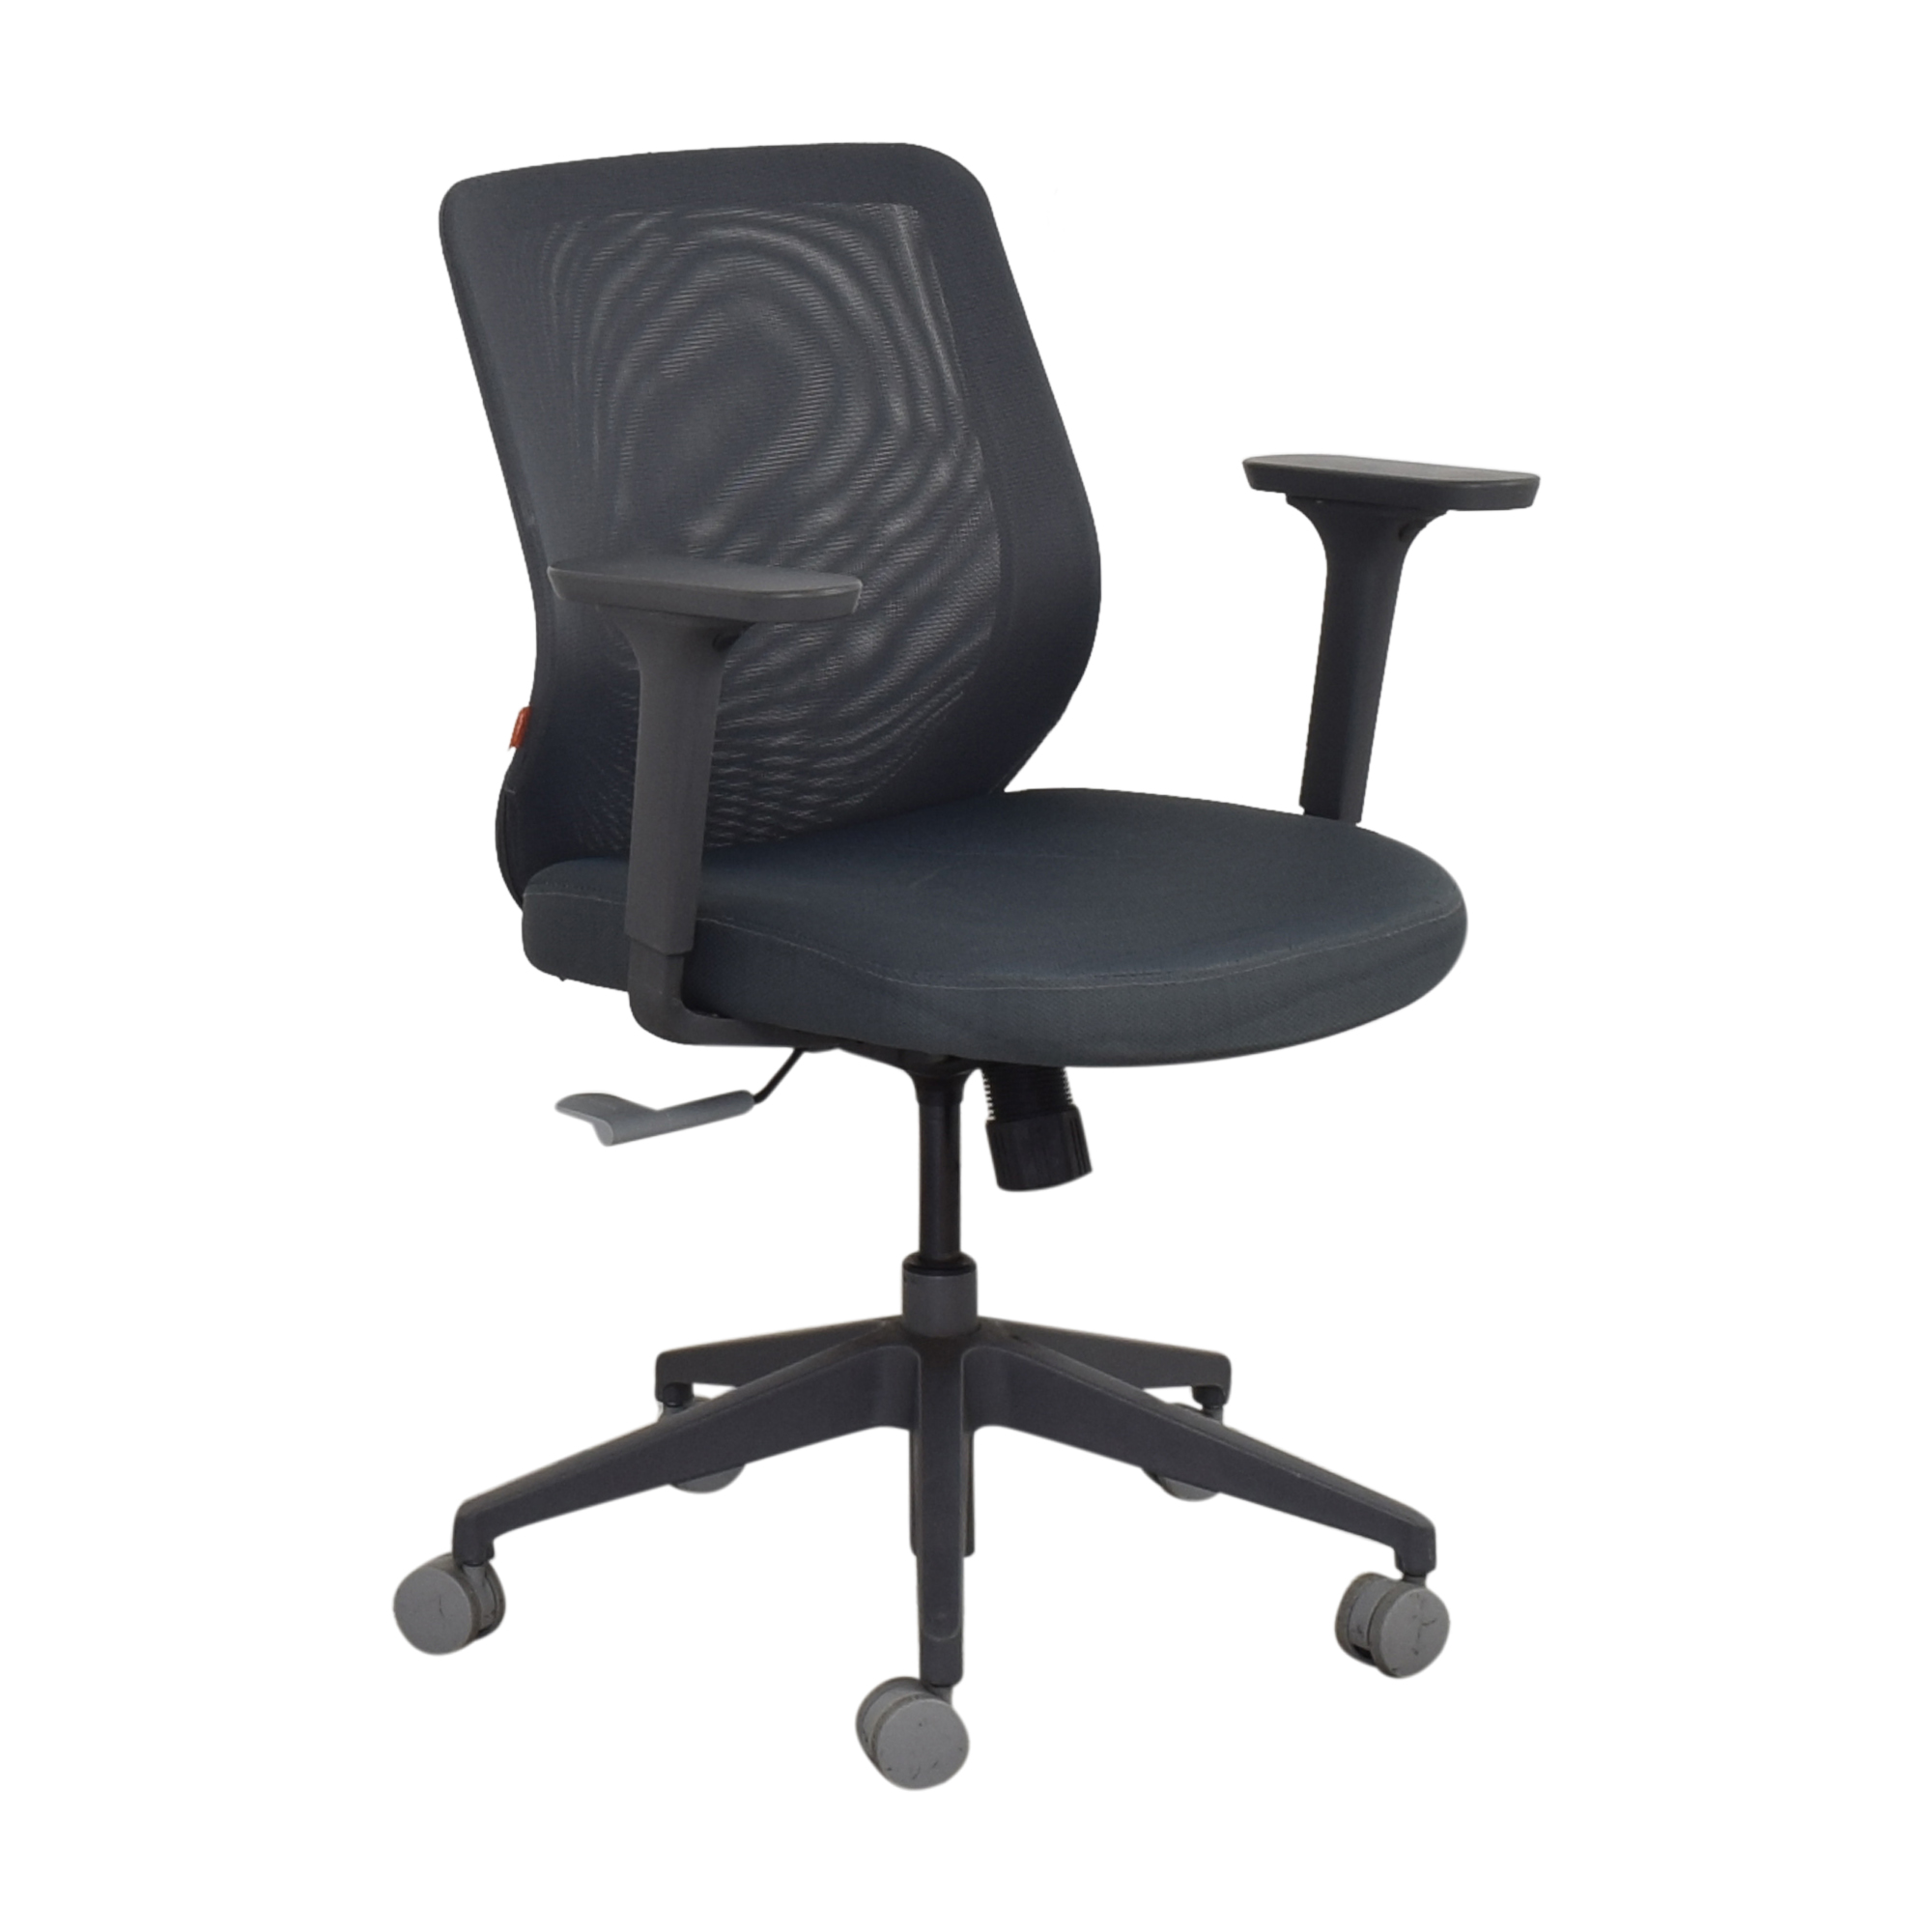 Poppin Poppin Max Task Chair